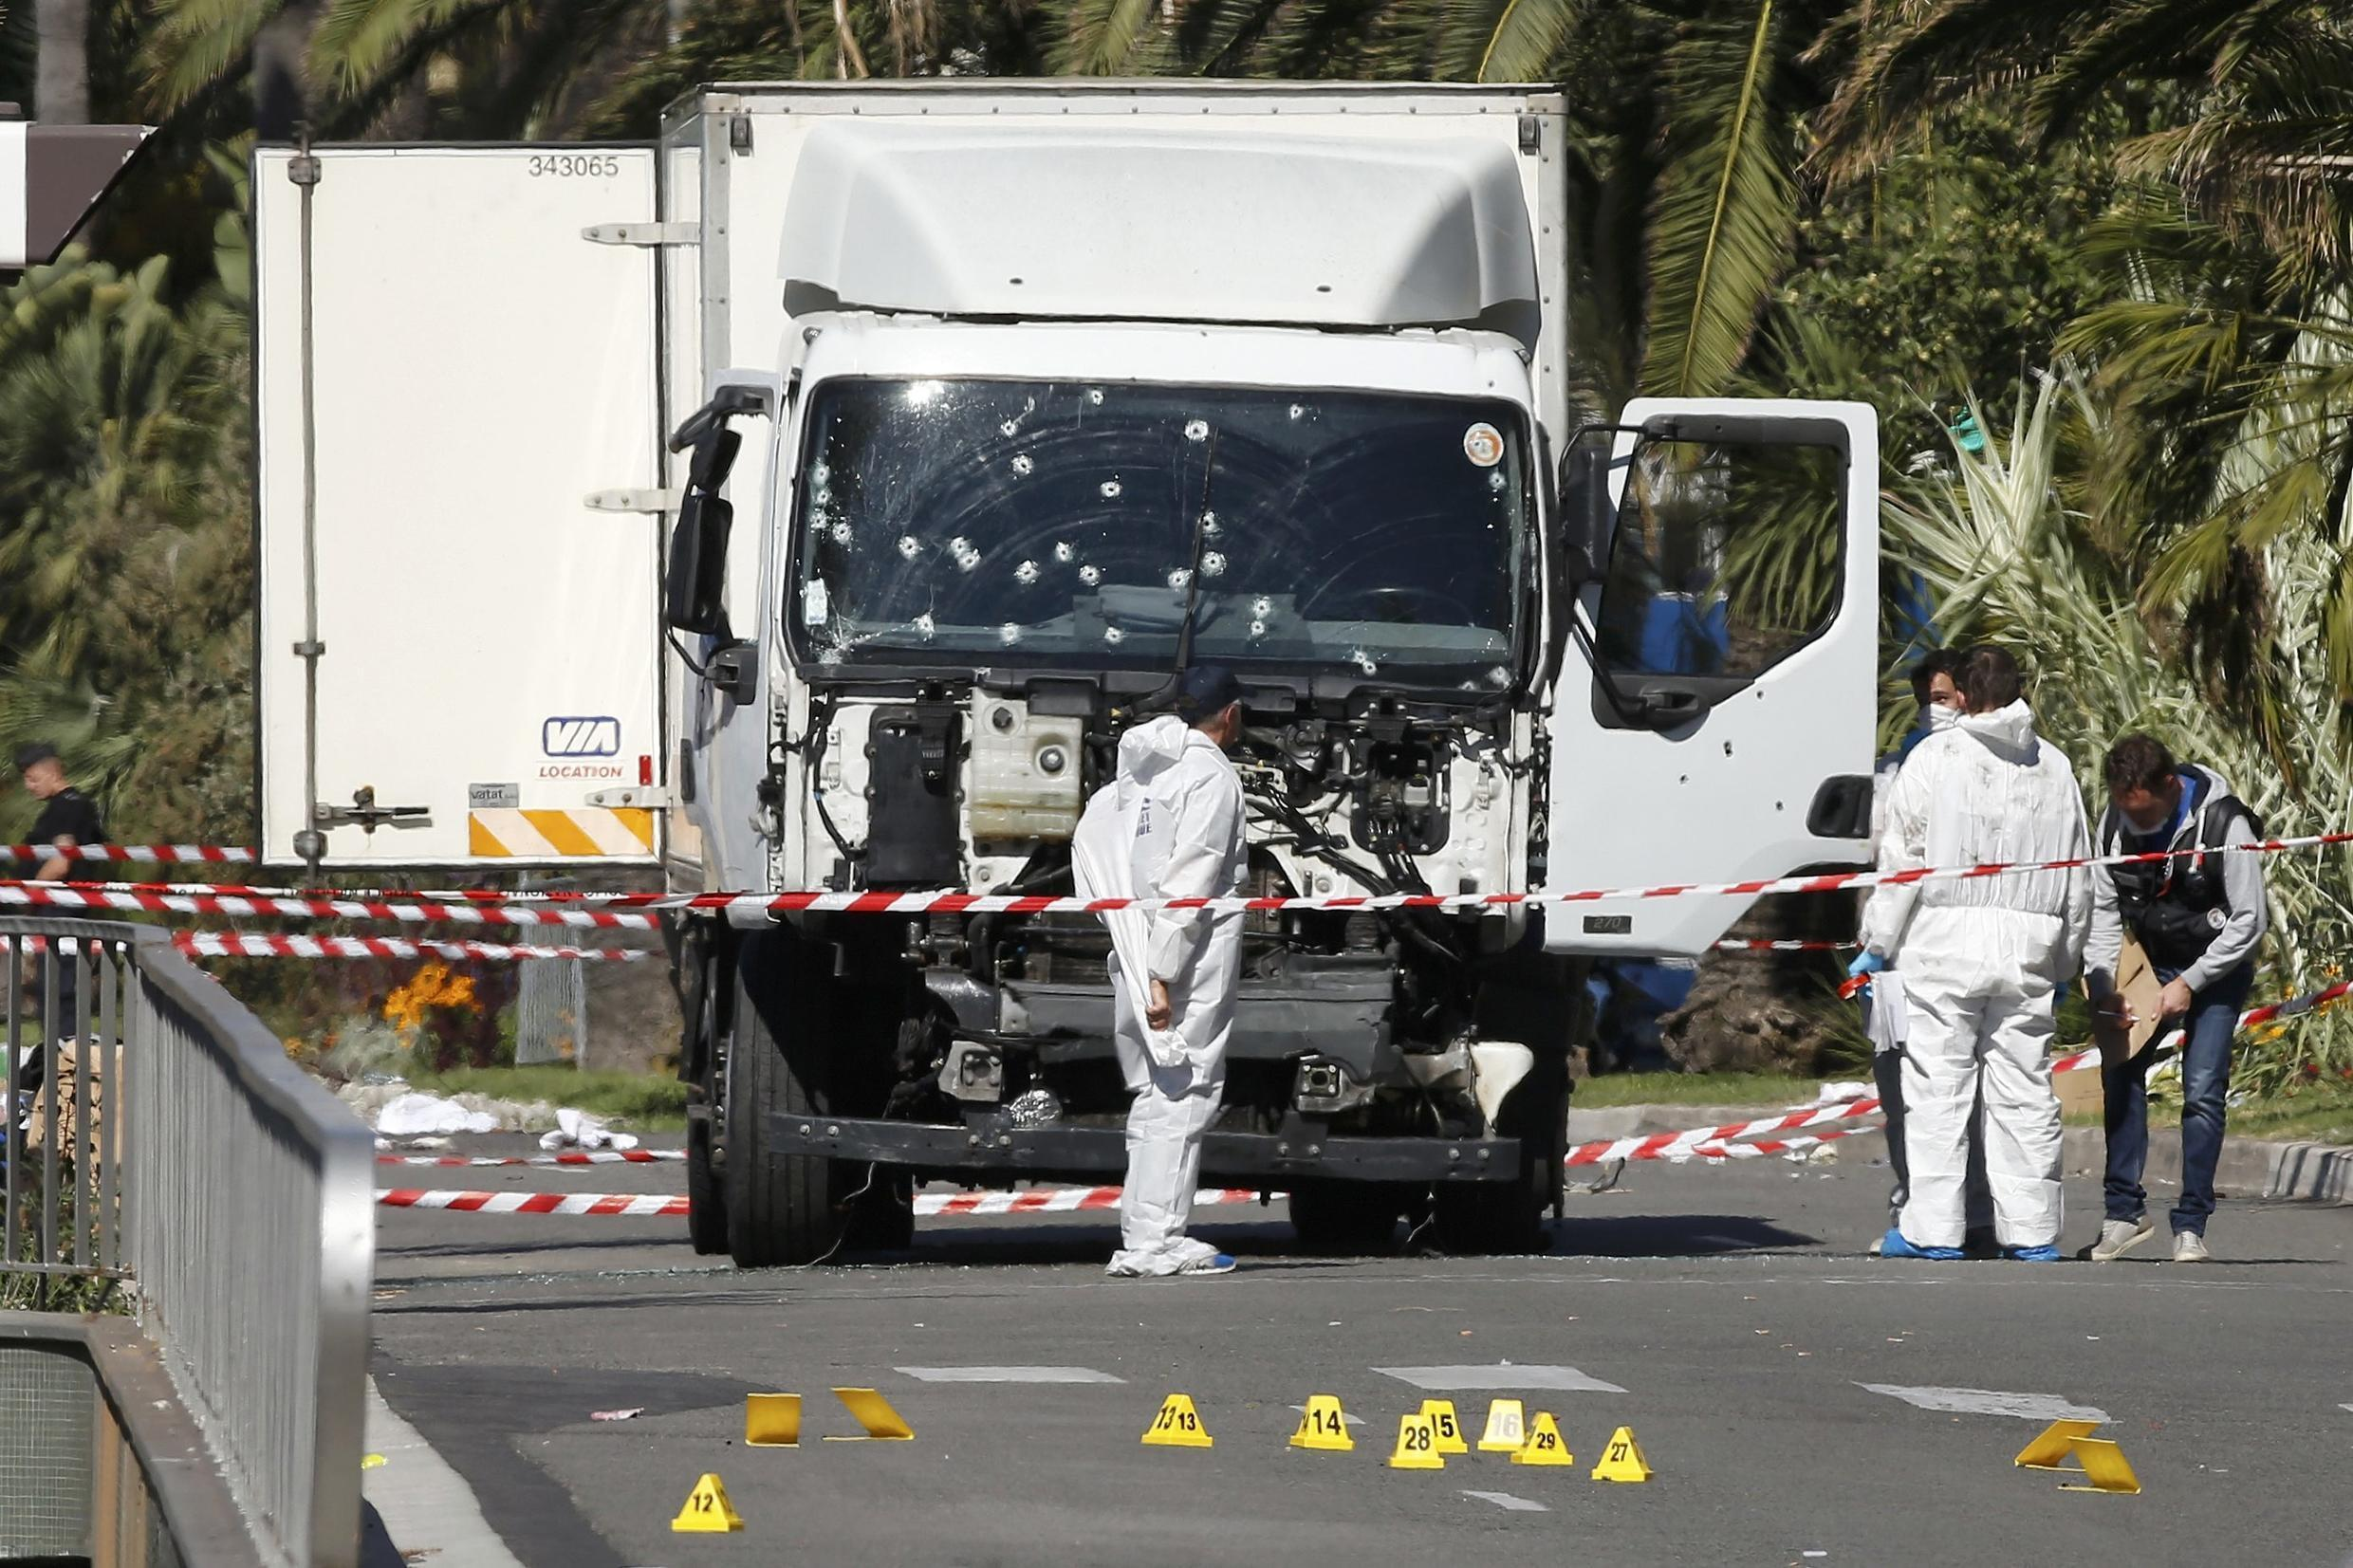 Investigators continue to work at the scene near the truck that ran into a crowd in Nice killing at least 84 people.